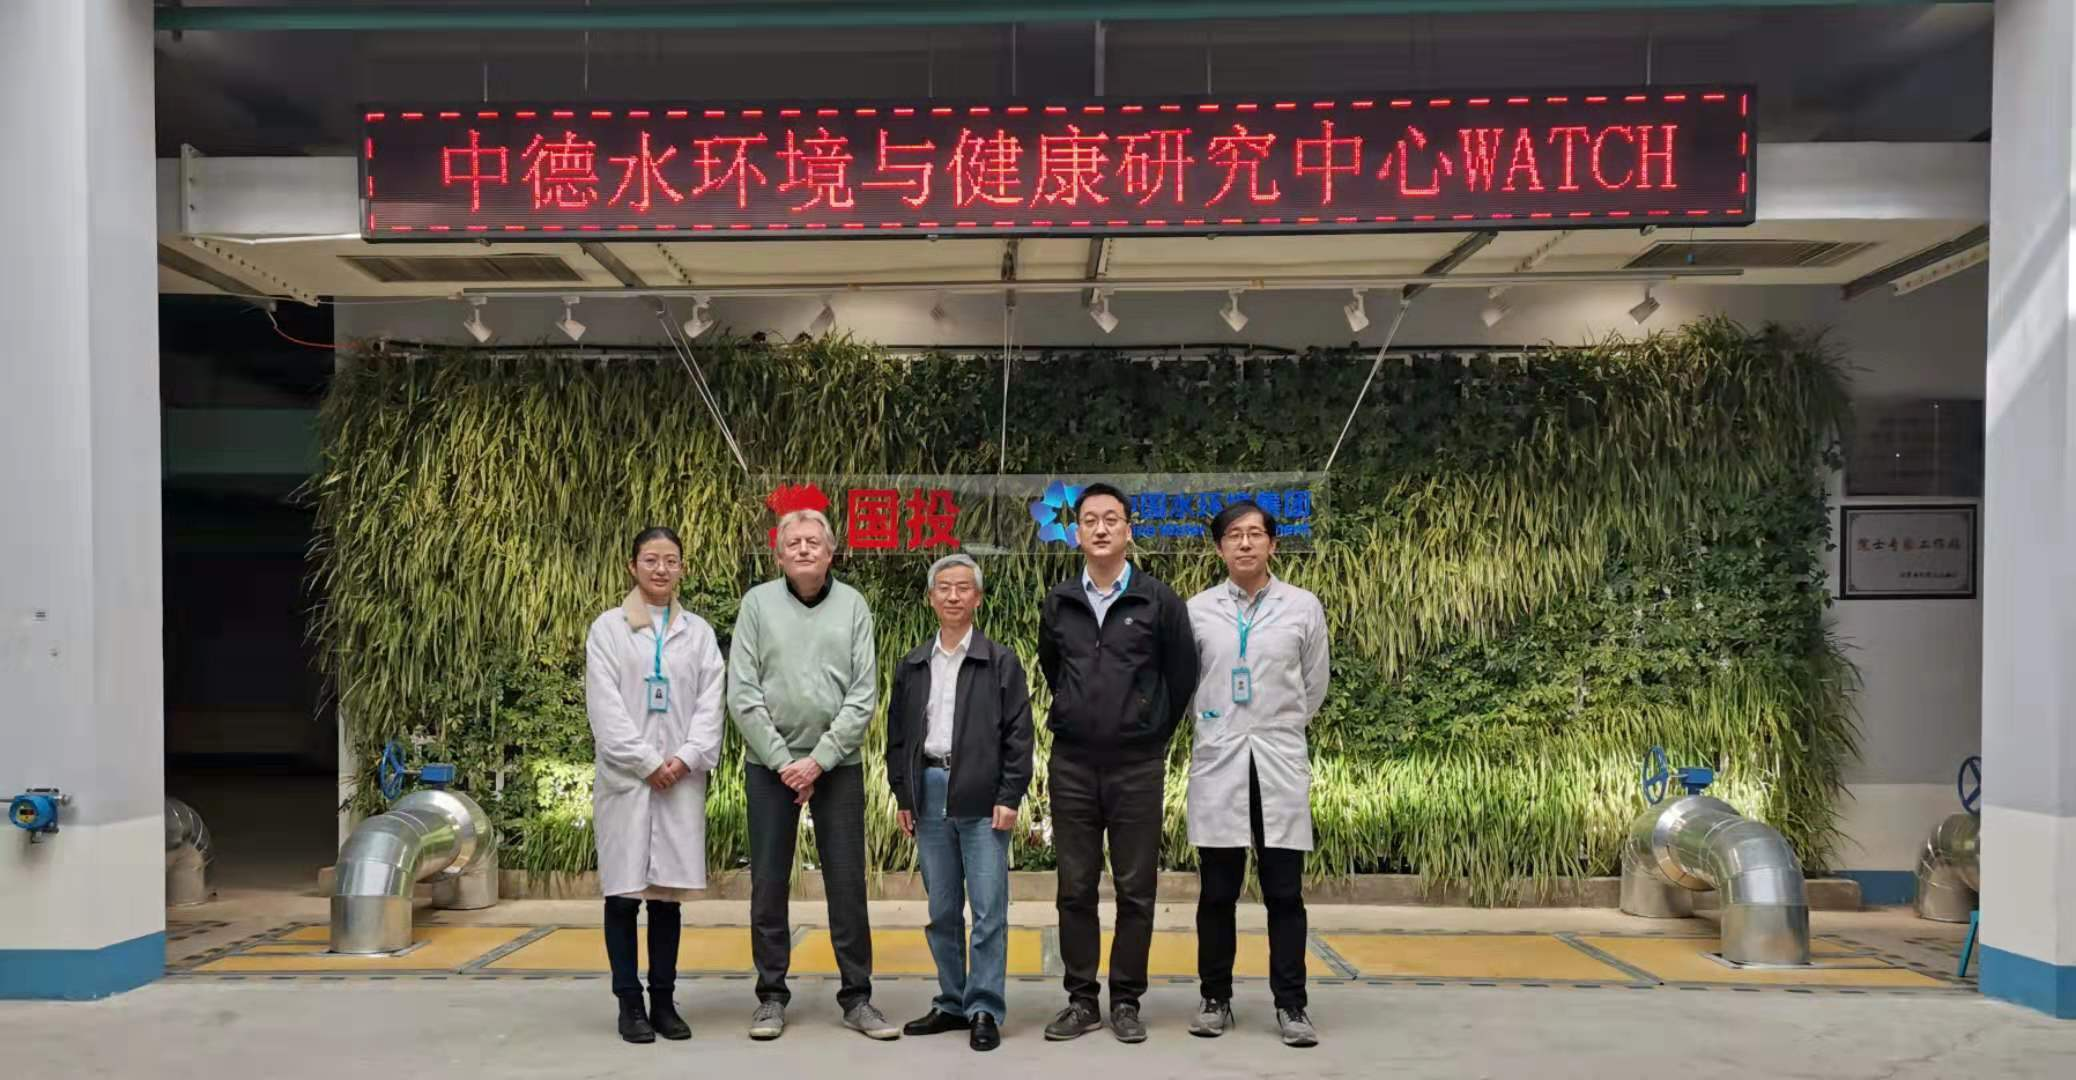 Visiting of the joint laboratory of WATCH in Beijing